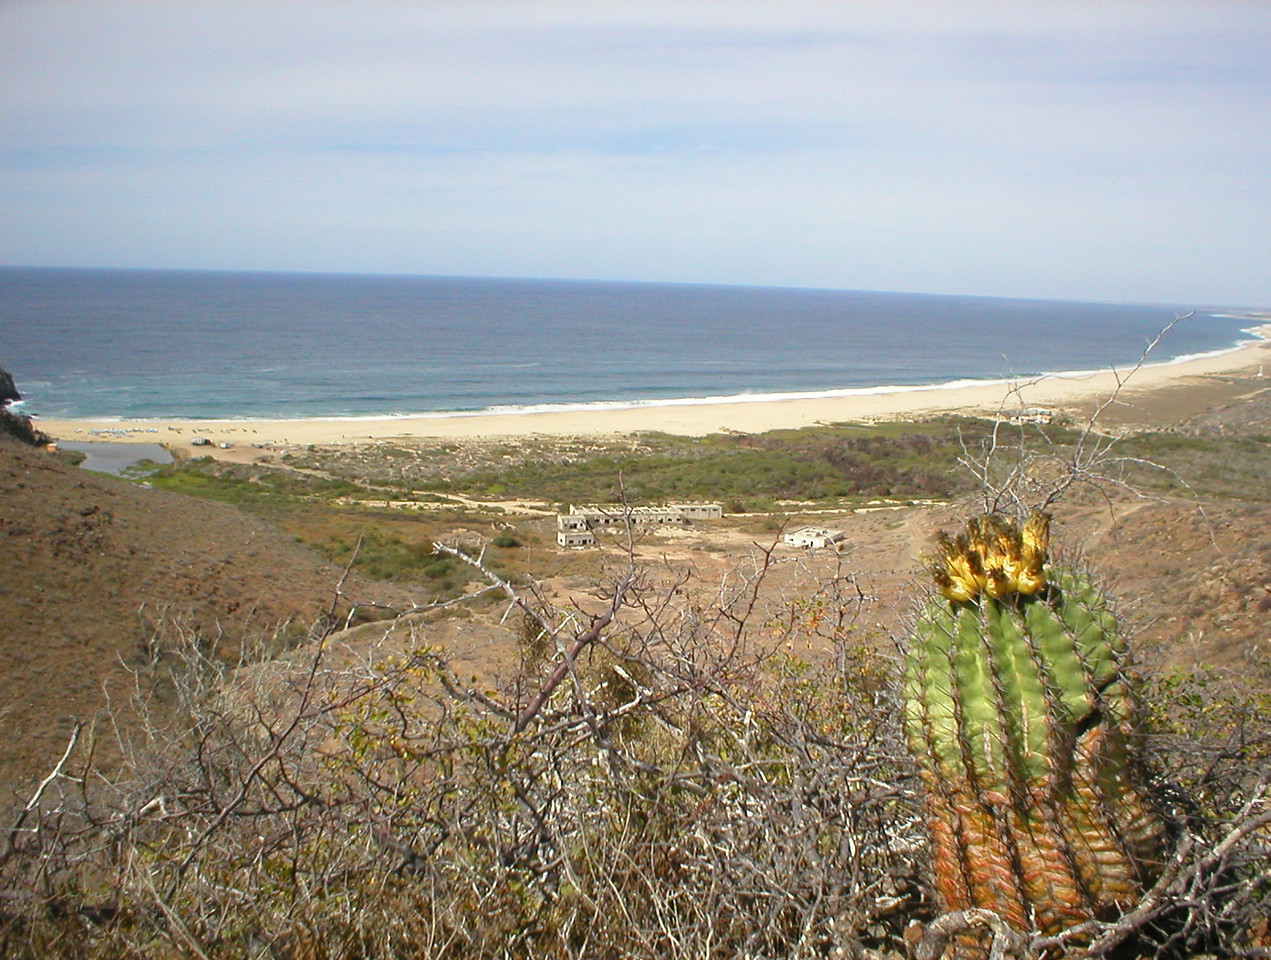 Heading back. This is the end of Todos Santos beach, it stretches over twenty miles long with no development.